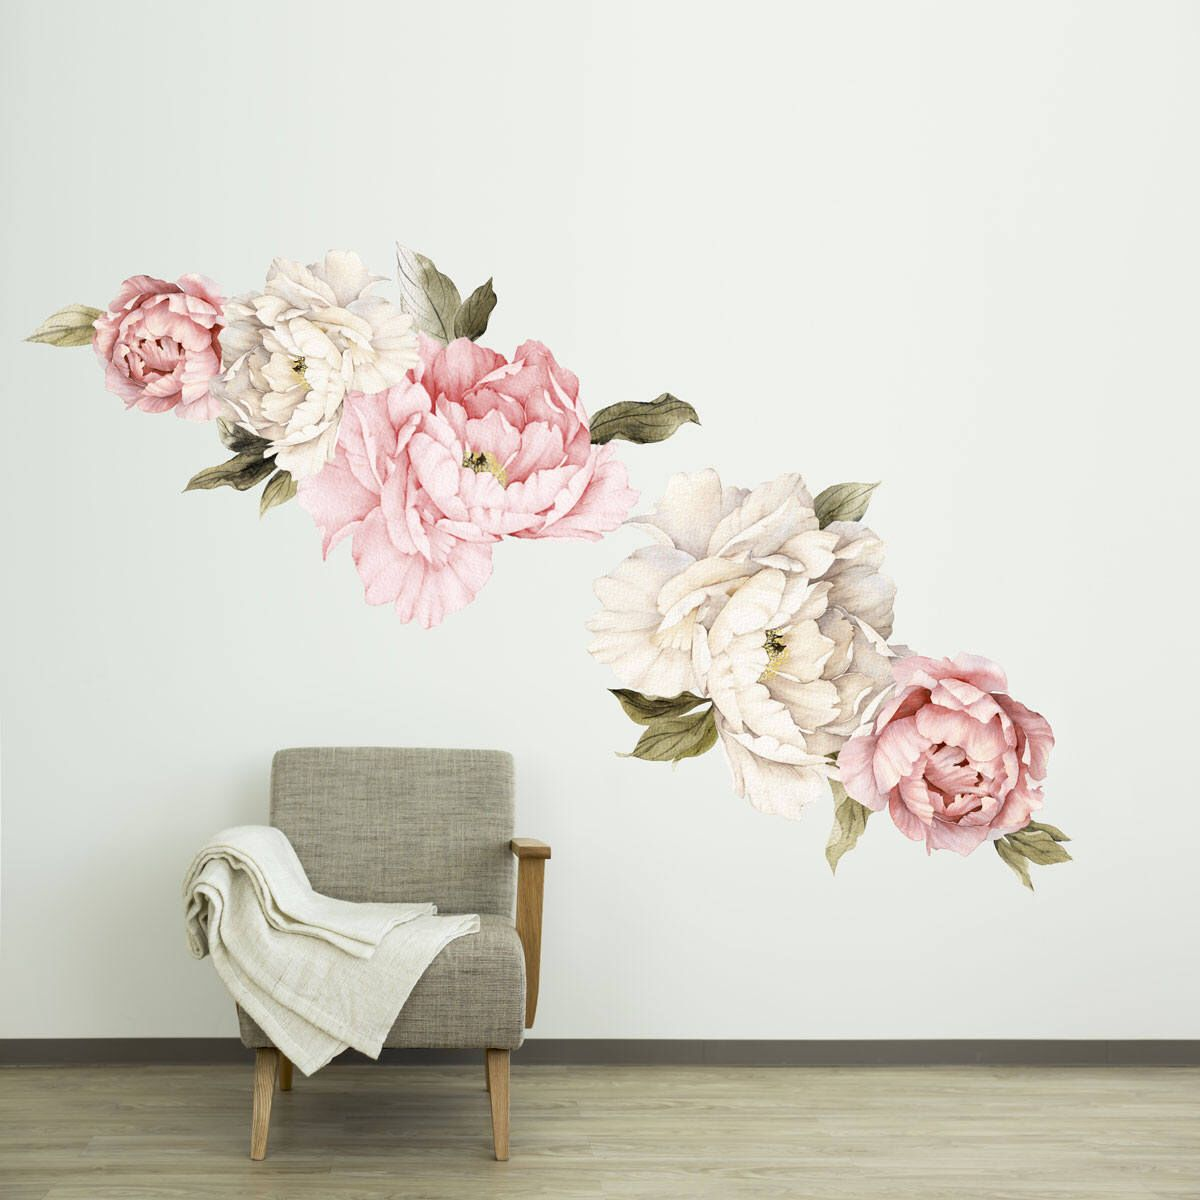 Floral wallpaper mural watercolor peony large self adhesive floral wallpaper mural watercolor peony large self adhesive wallpaper floral wall decals fabric wall amipublicfo Gallery